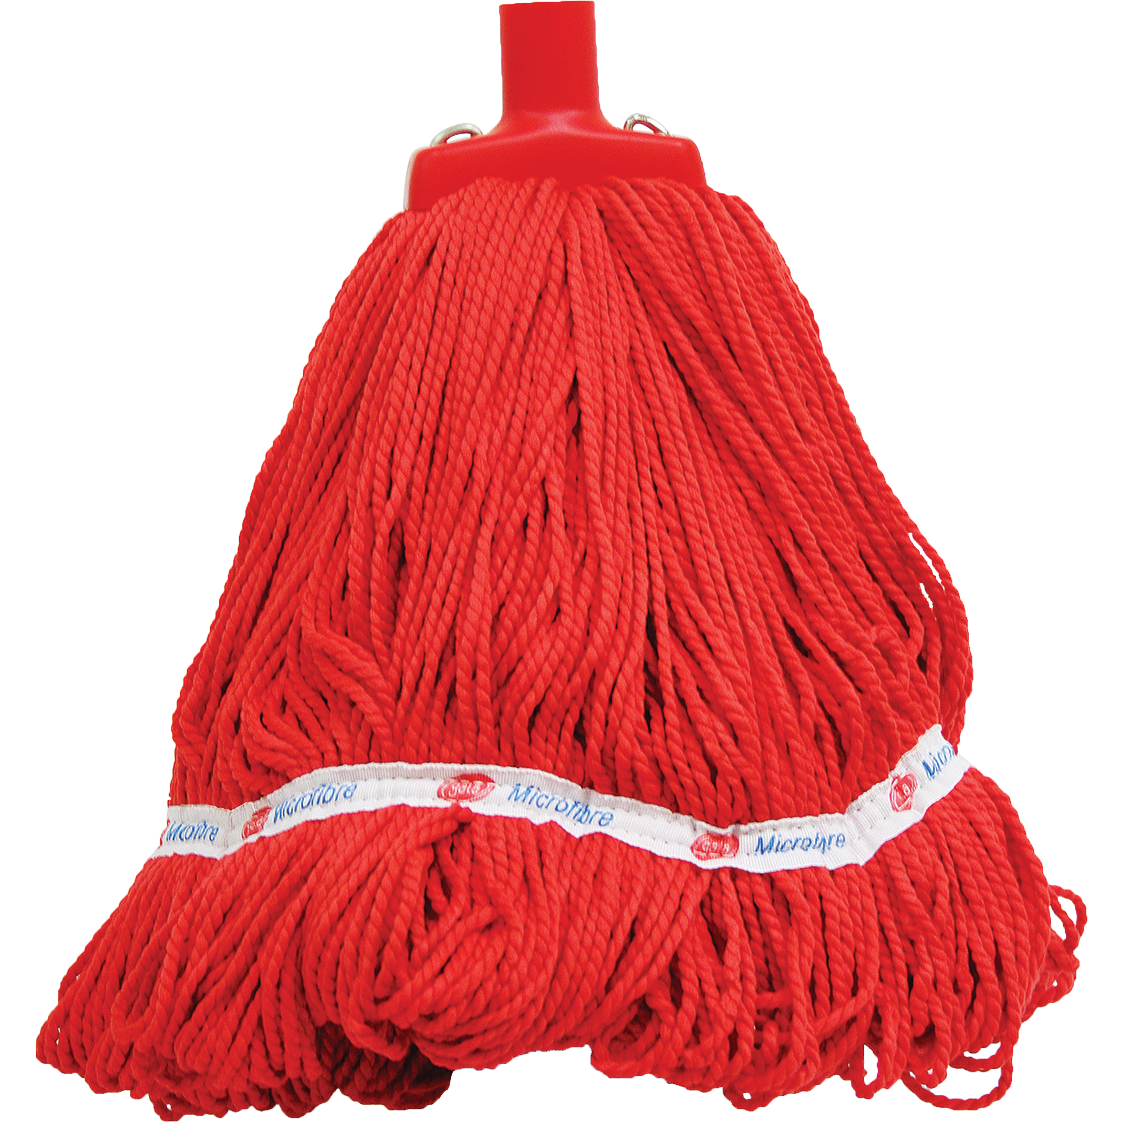 GALA MOP - MICROFIBRE Red 400g - Sold by Single Unit in multiples of 1 Single Unit